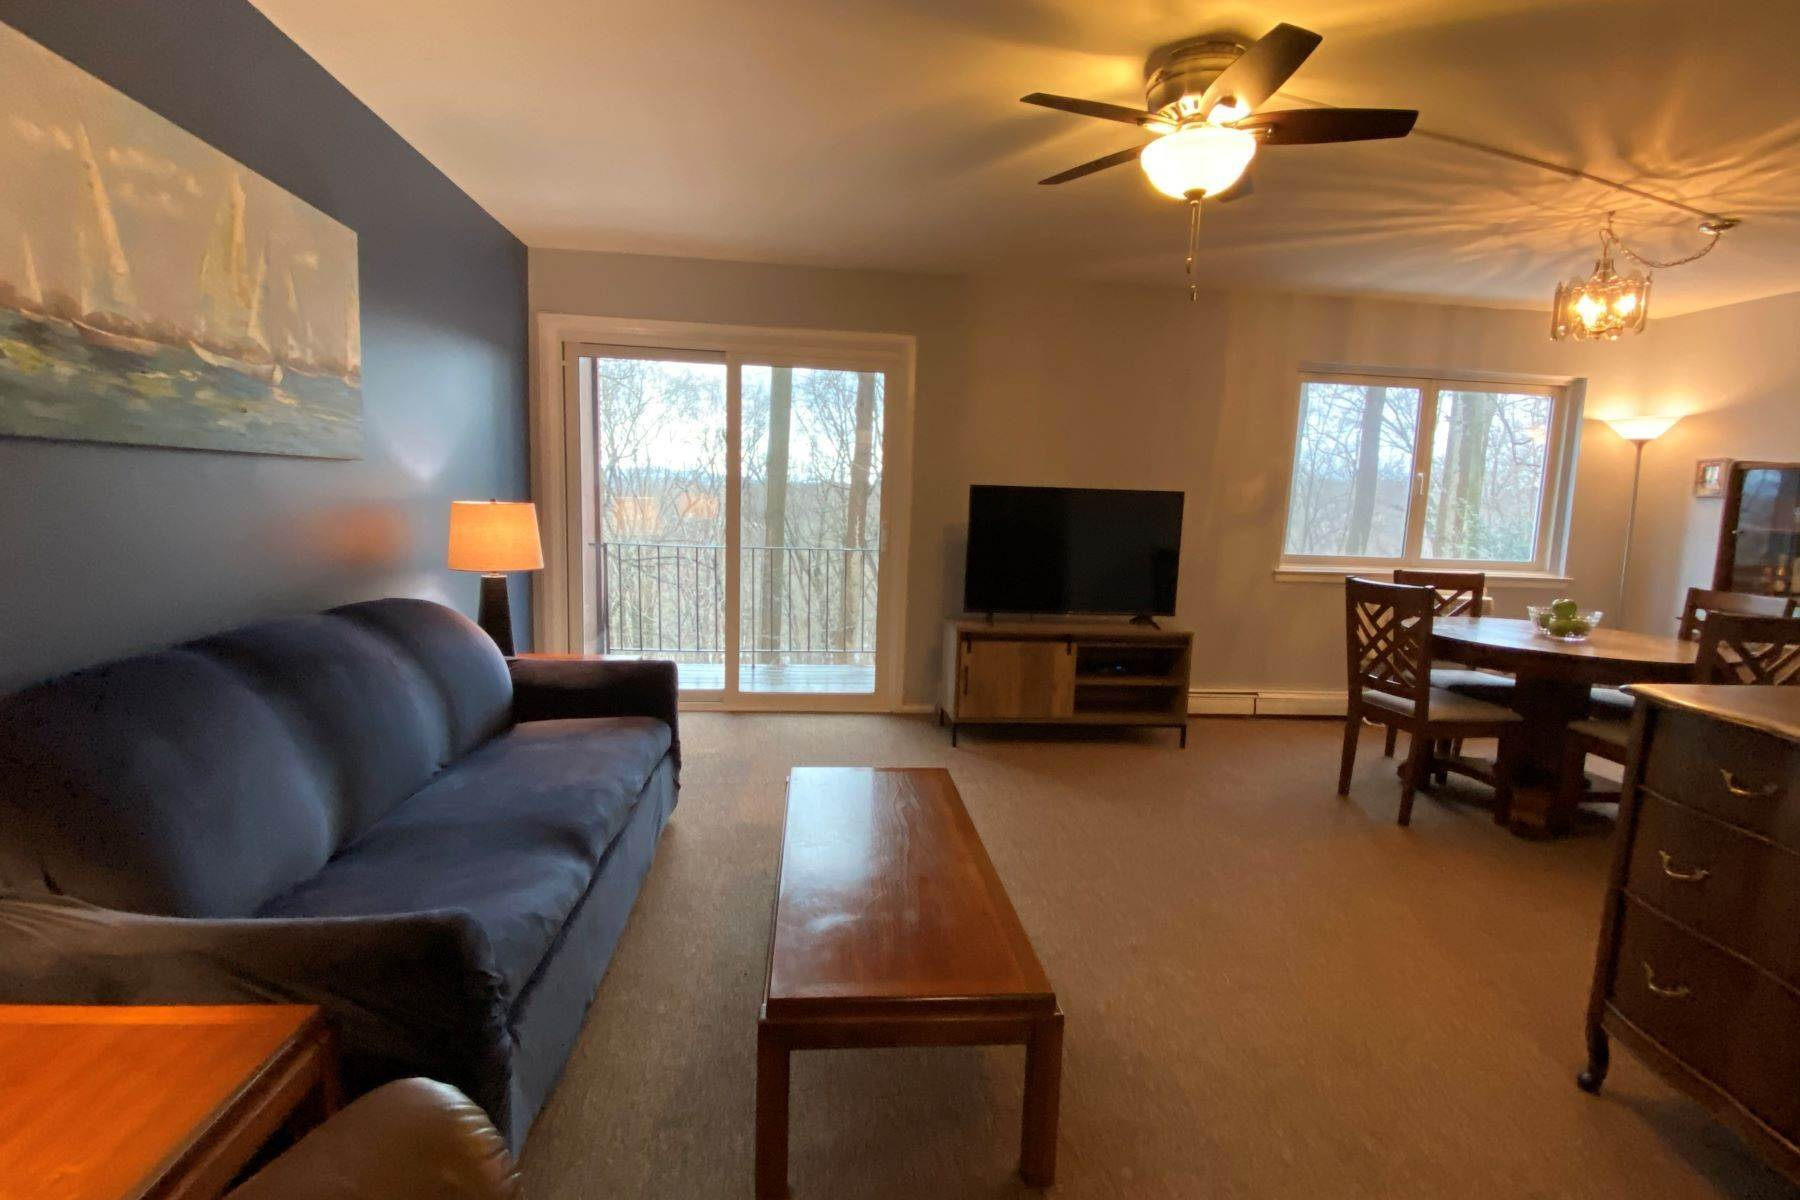 Co-op Properties для того Продажа на Hudson Woods Estates 16 Scenic Drive, Unit D Croton On Hudson, Нью-Йорк 10520 Соединенные Штаты